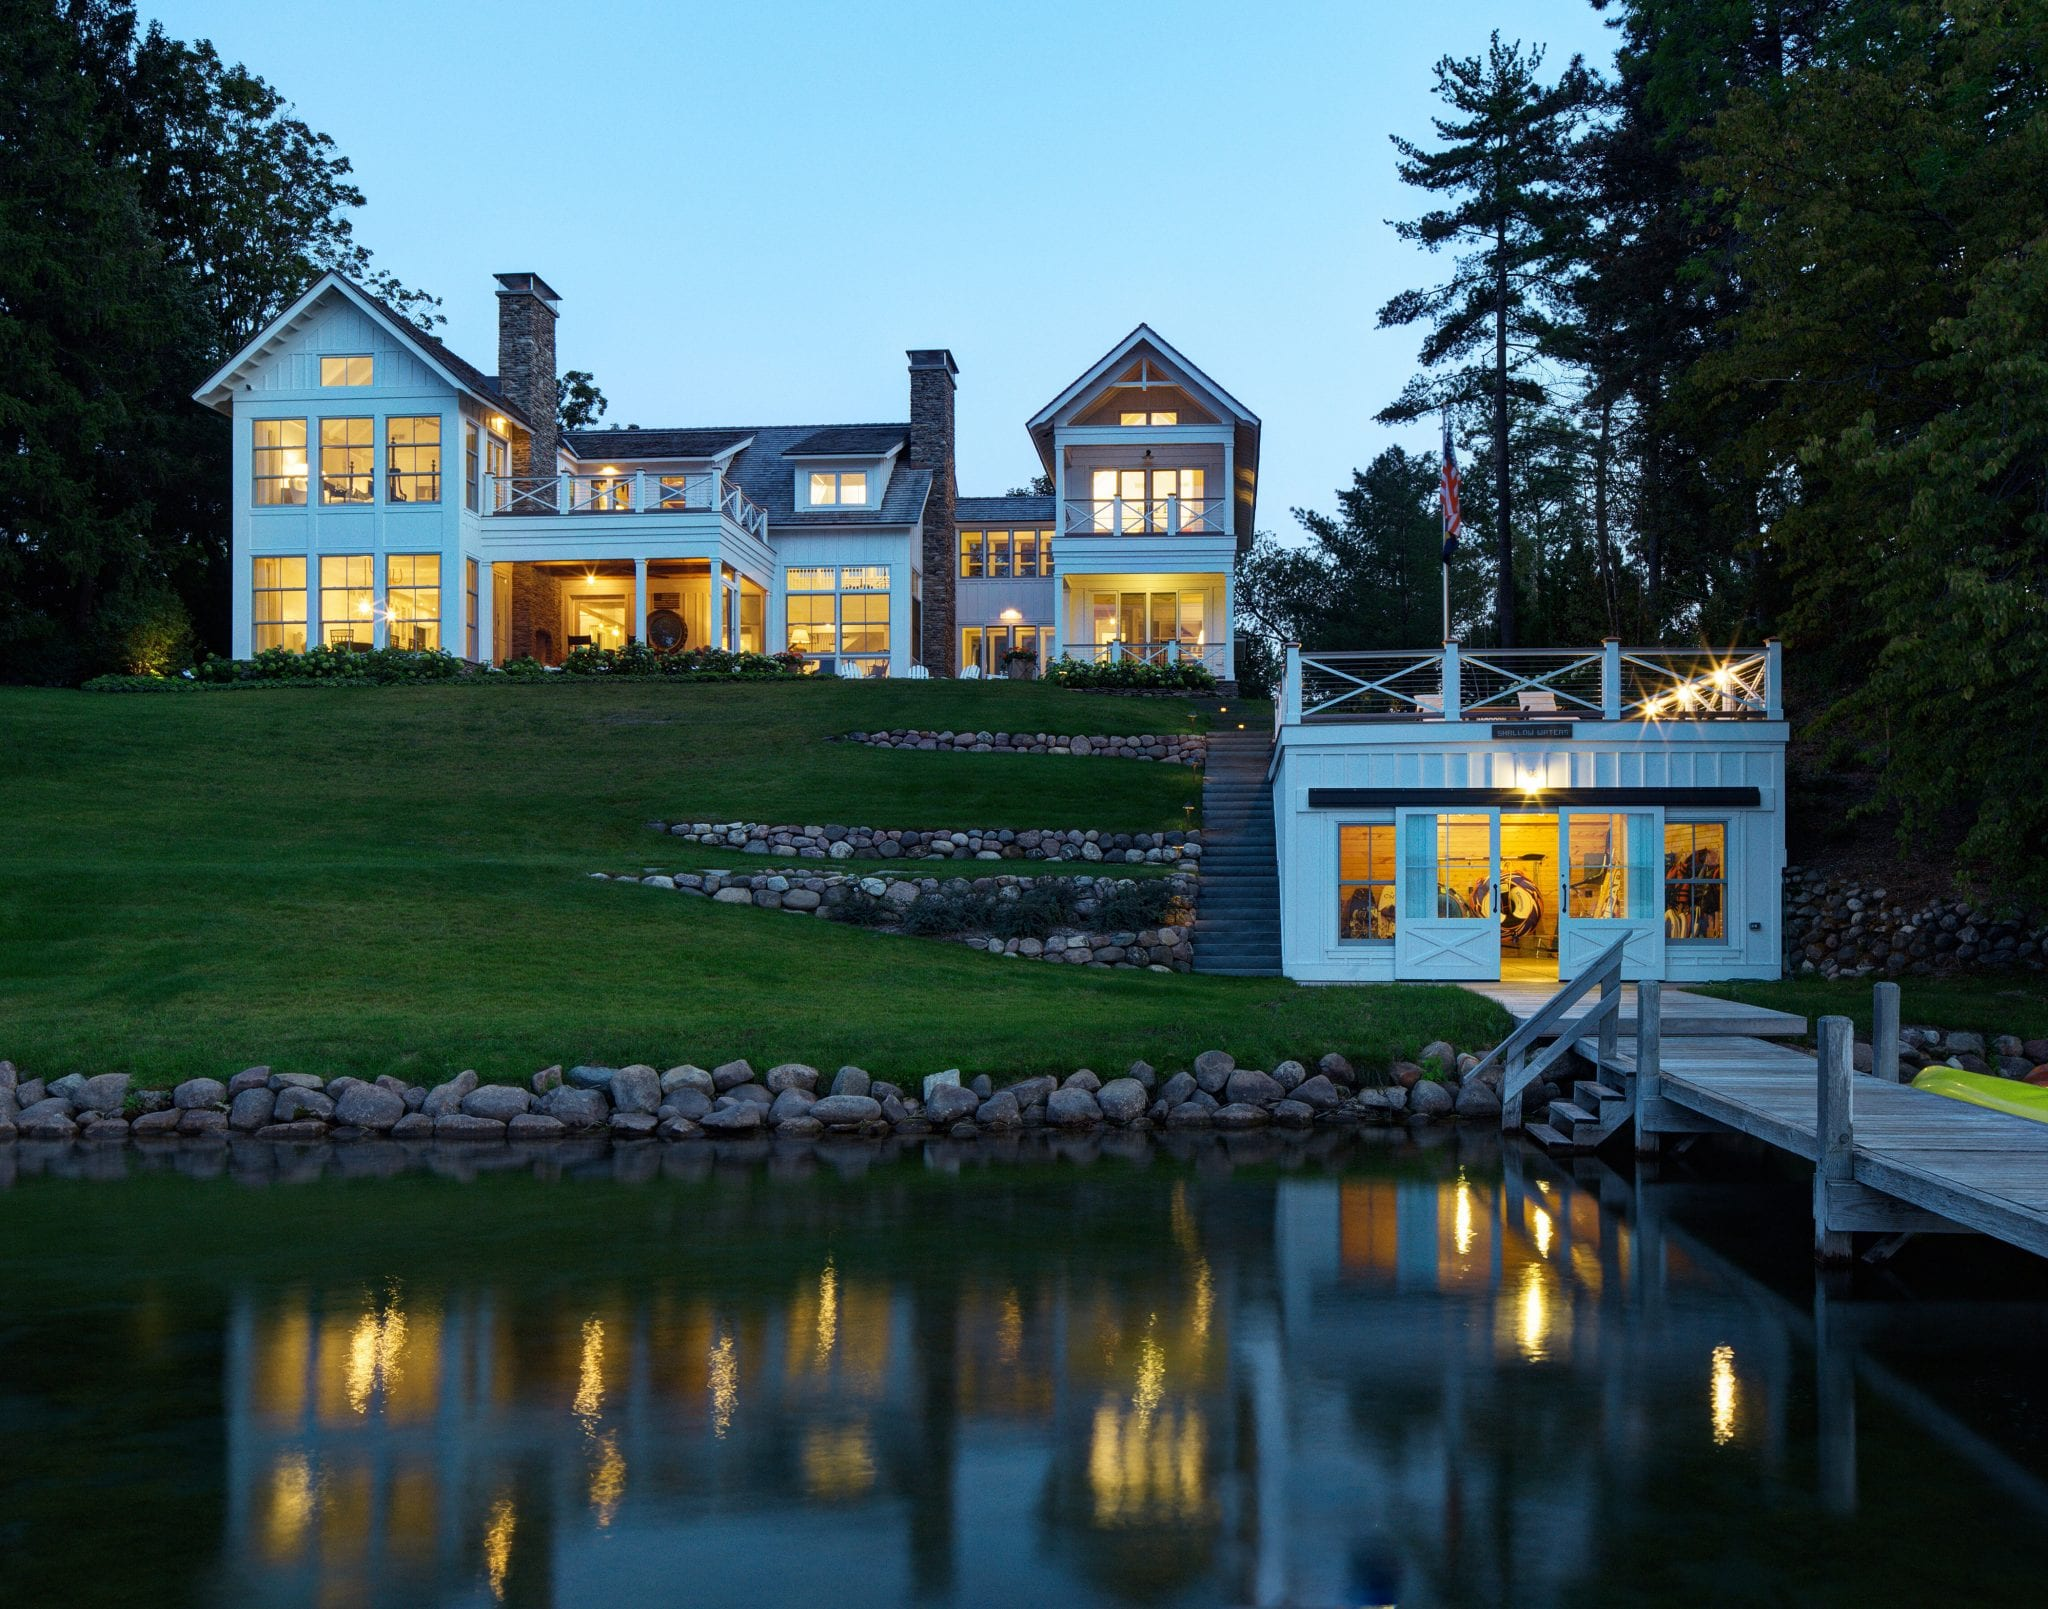 Celebrating the 4th of July at a Custom Lake Home